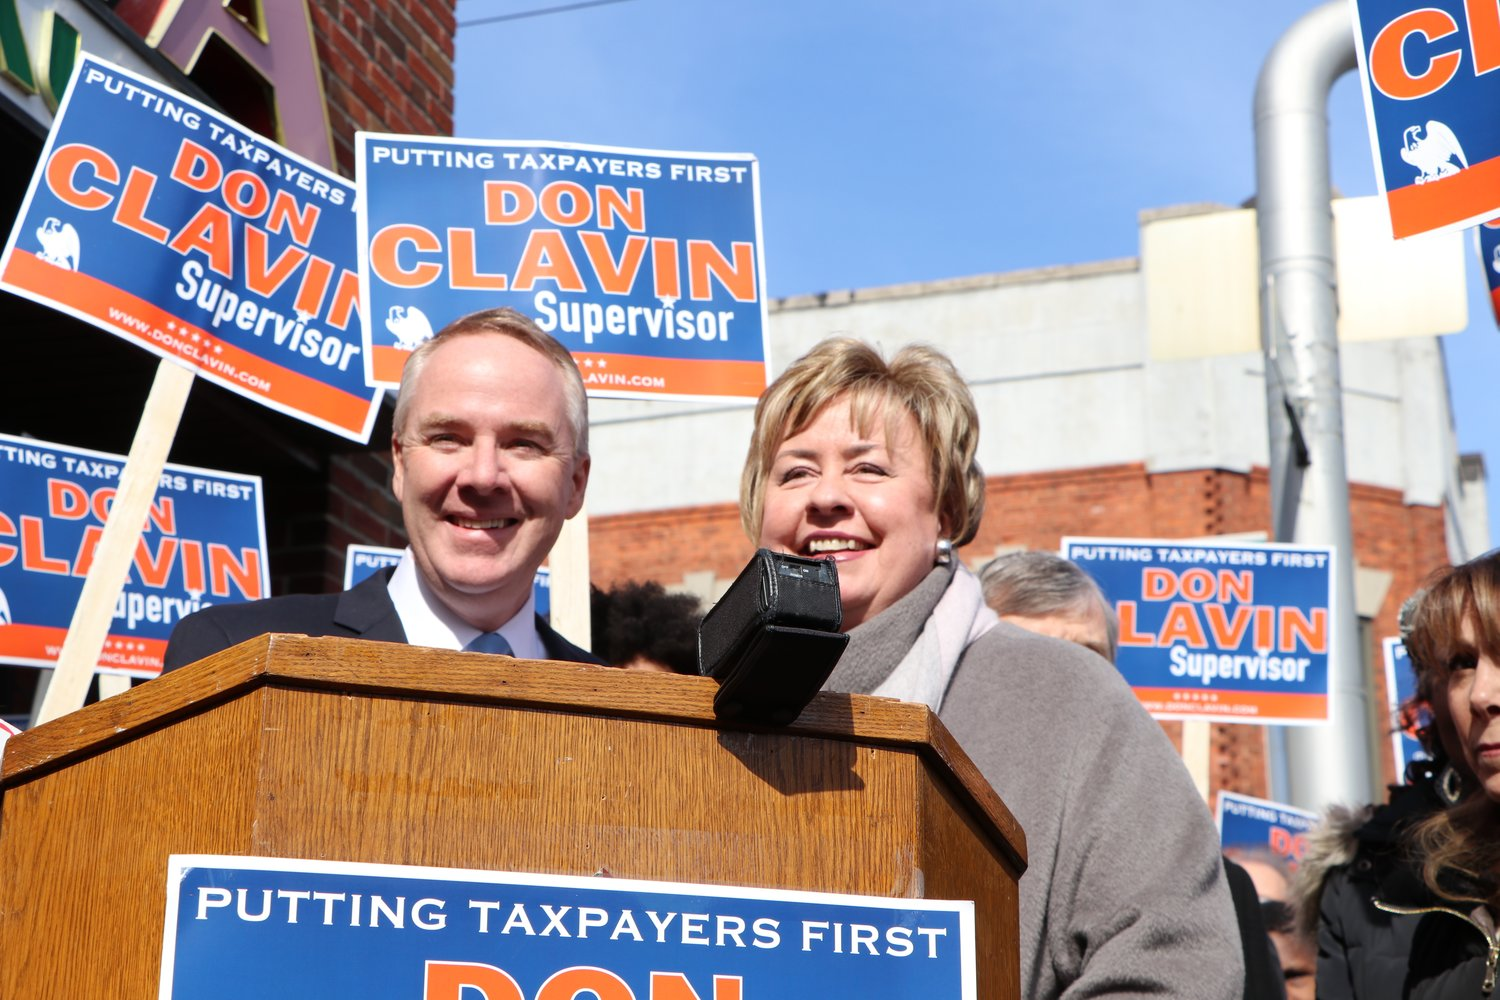 Town of Hempstead Receiver of Taxes Donald Clavin with Kate Murray.